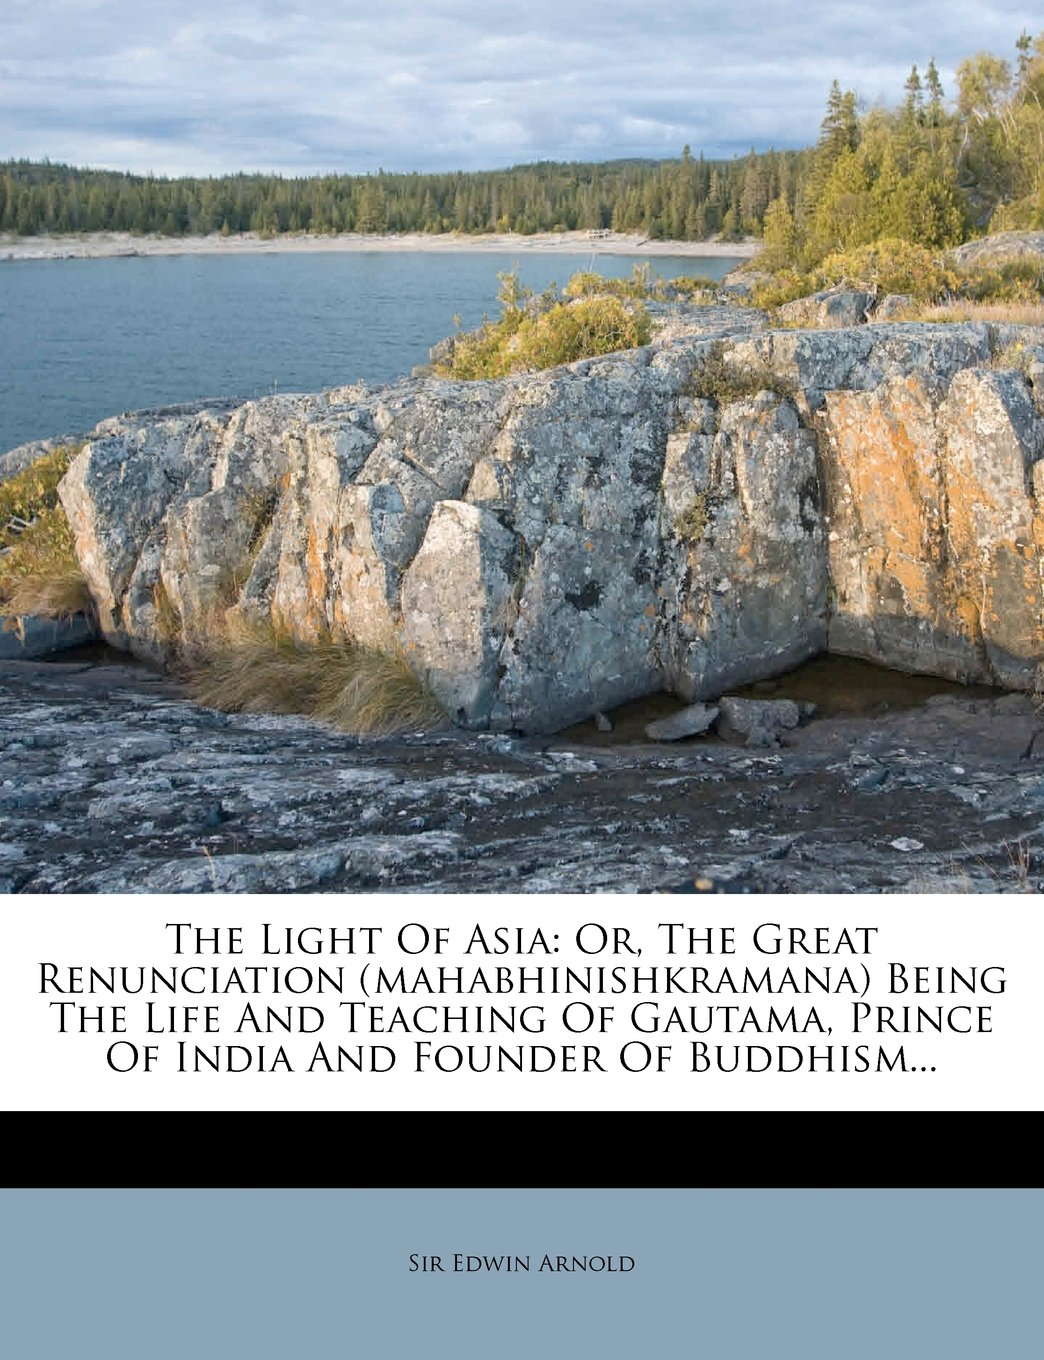 Download The Light Of Asia: Or, The Great Renunciation (mahabhinishkramana) Being The Life And Teaching Of Gautama, Prince Of India And Founder Of Buddhism... ebook